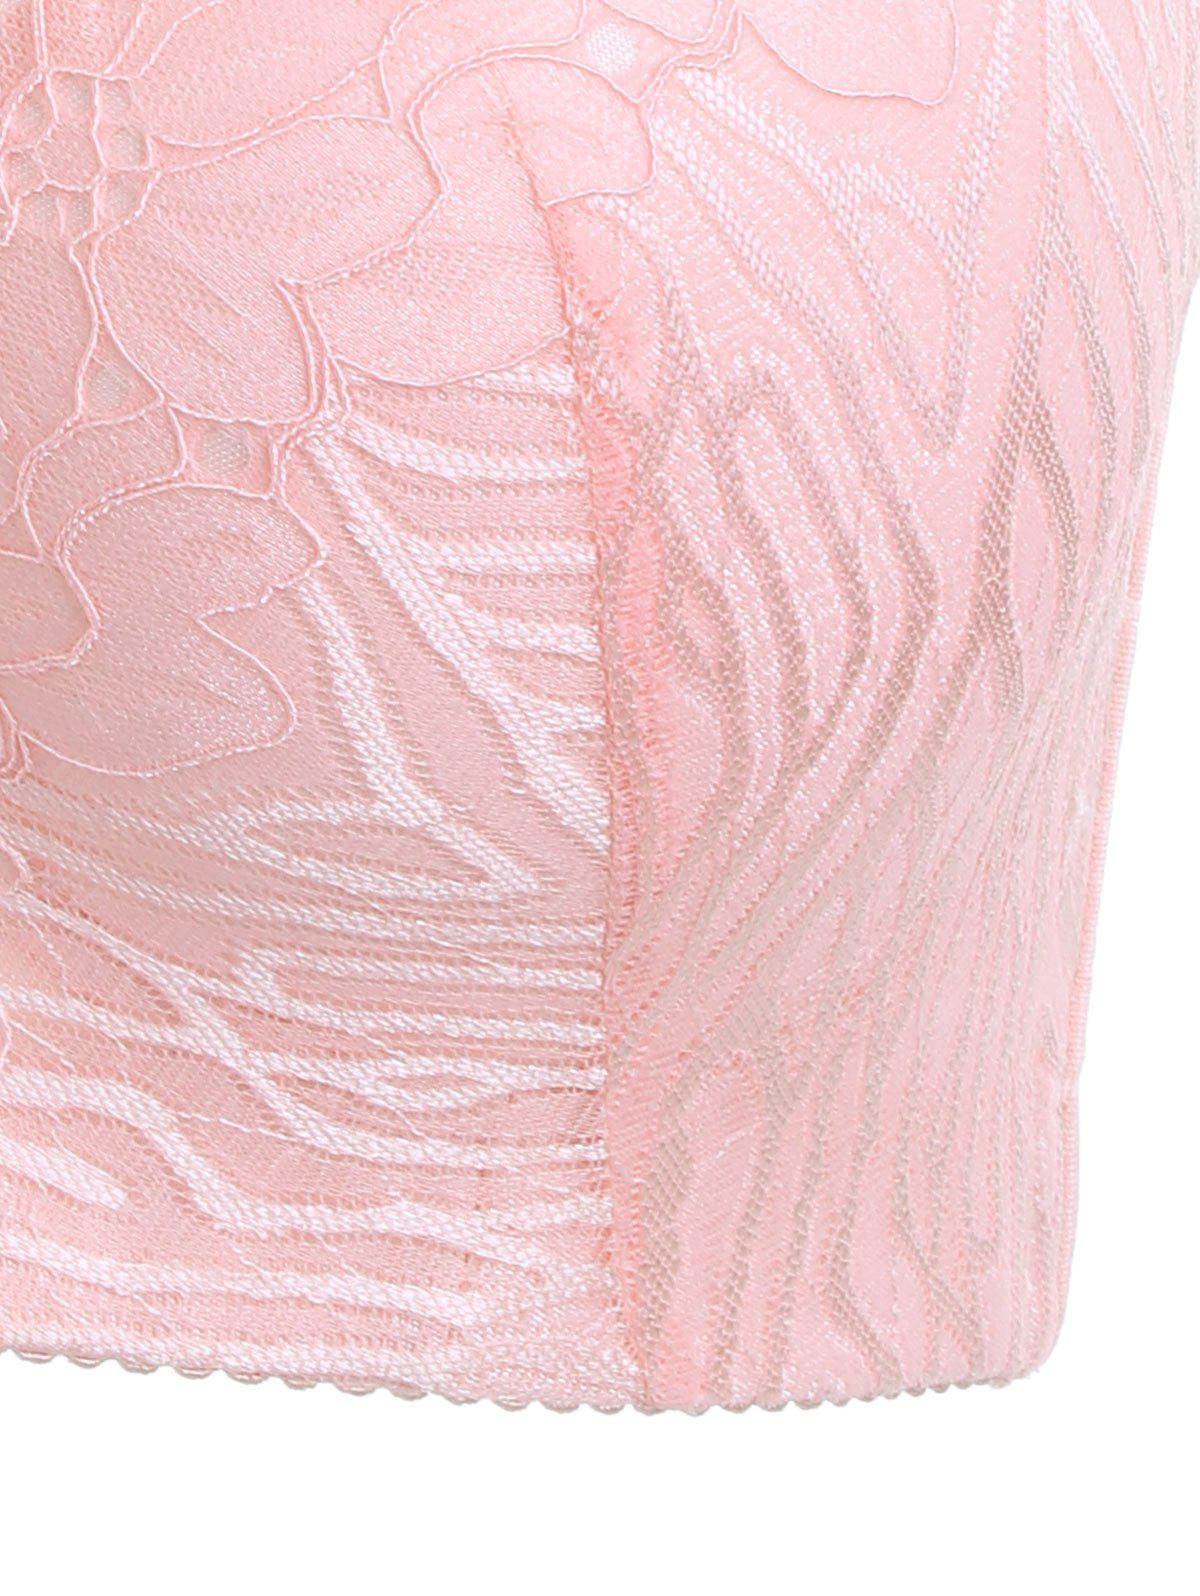 Padded Wirefree Floral Lace Panel Plus Size Bra - PINK 4XL